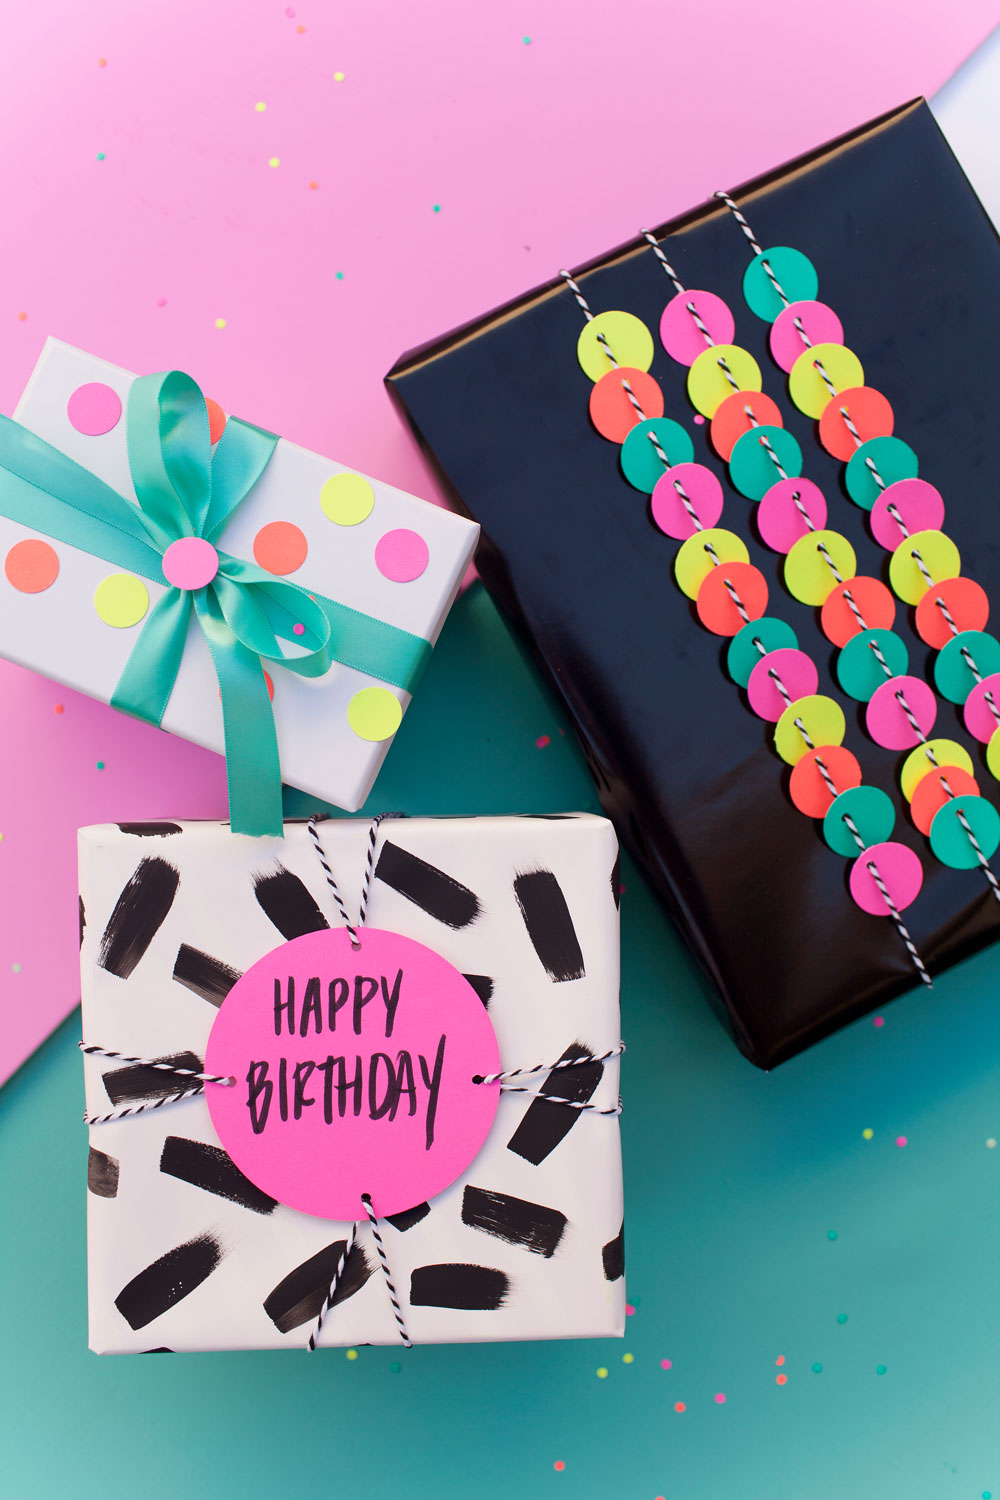 FUN GIFT WRAP IDEAS USING A HOLE PUNCH